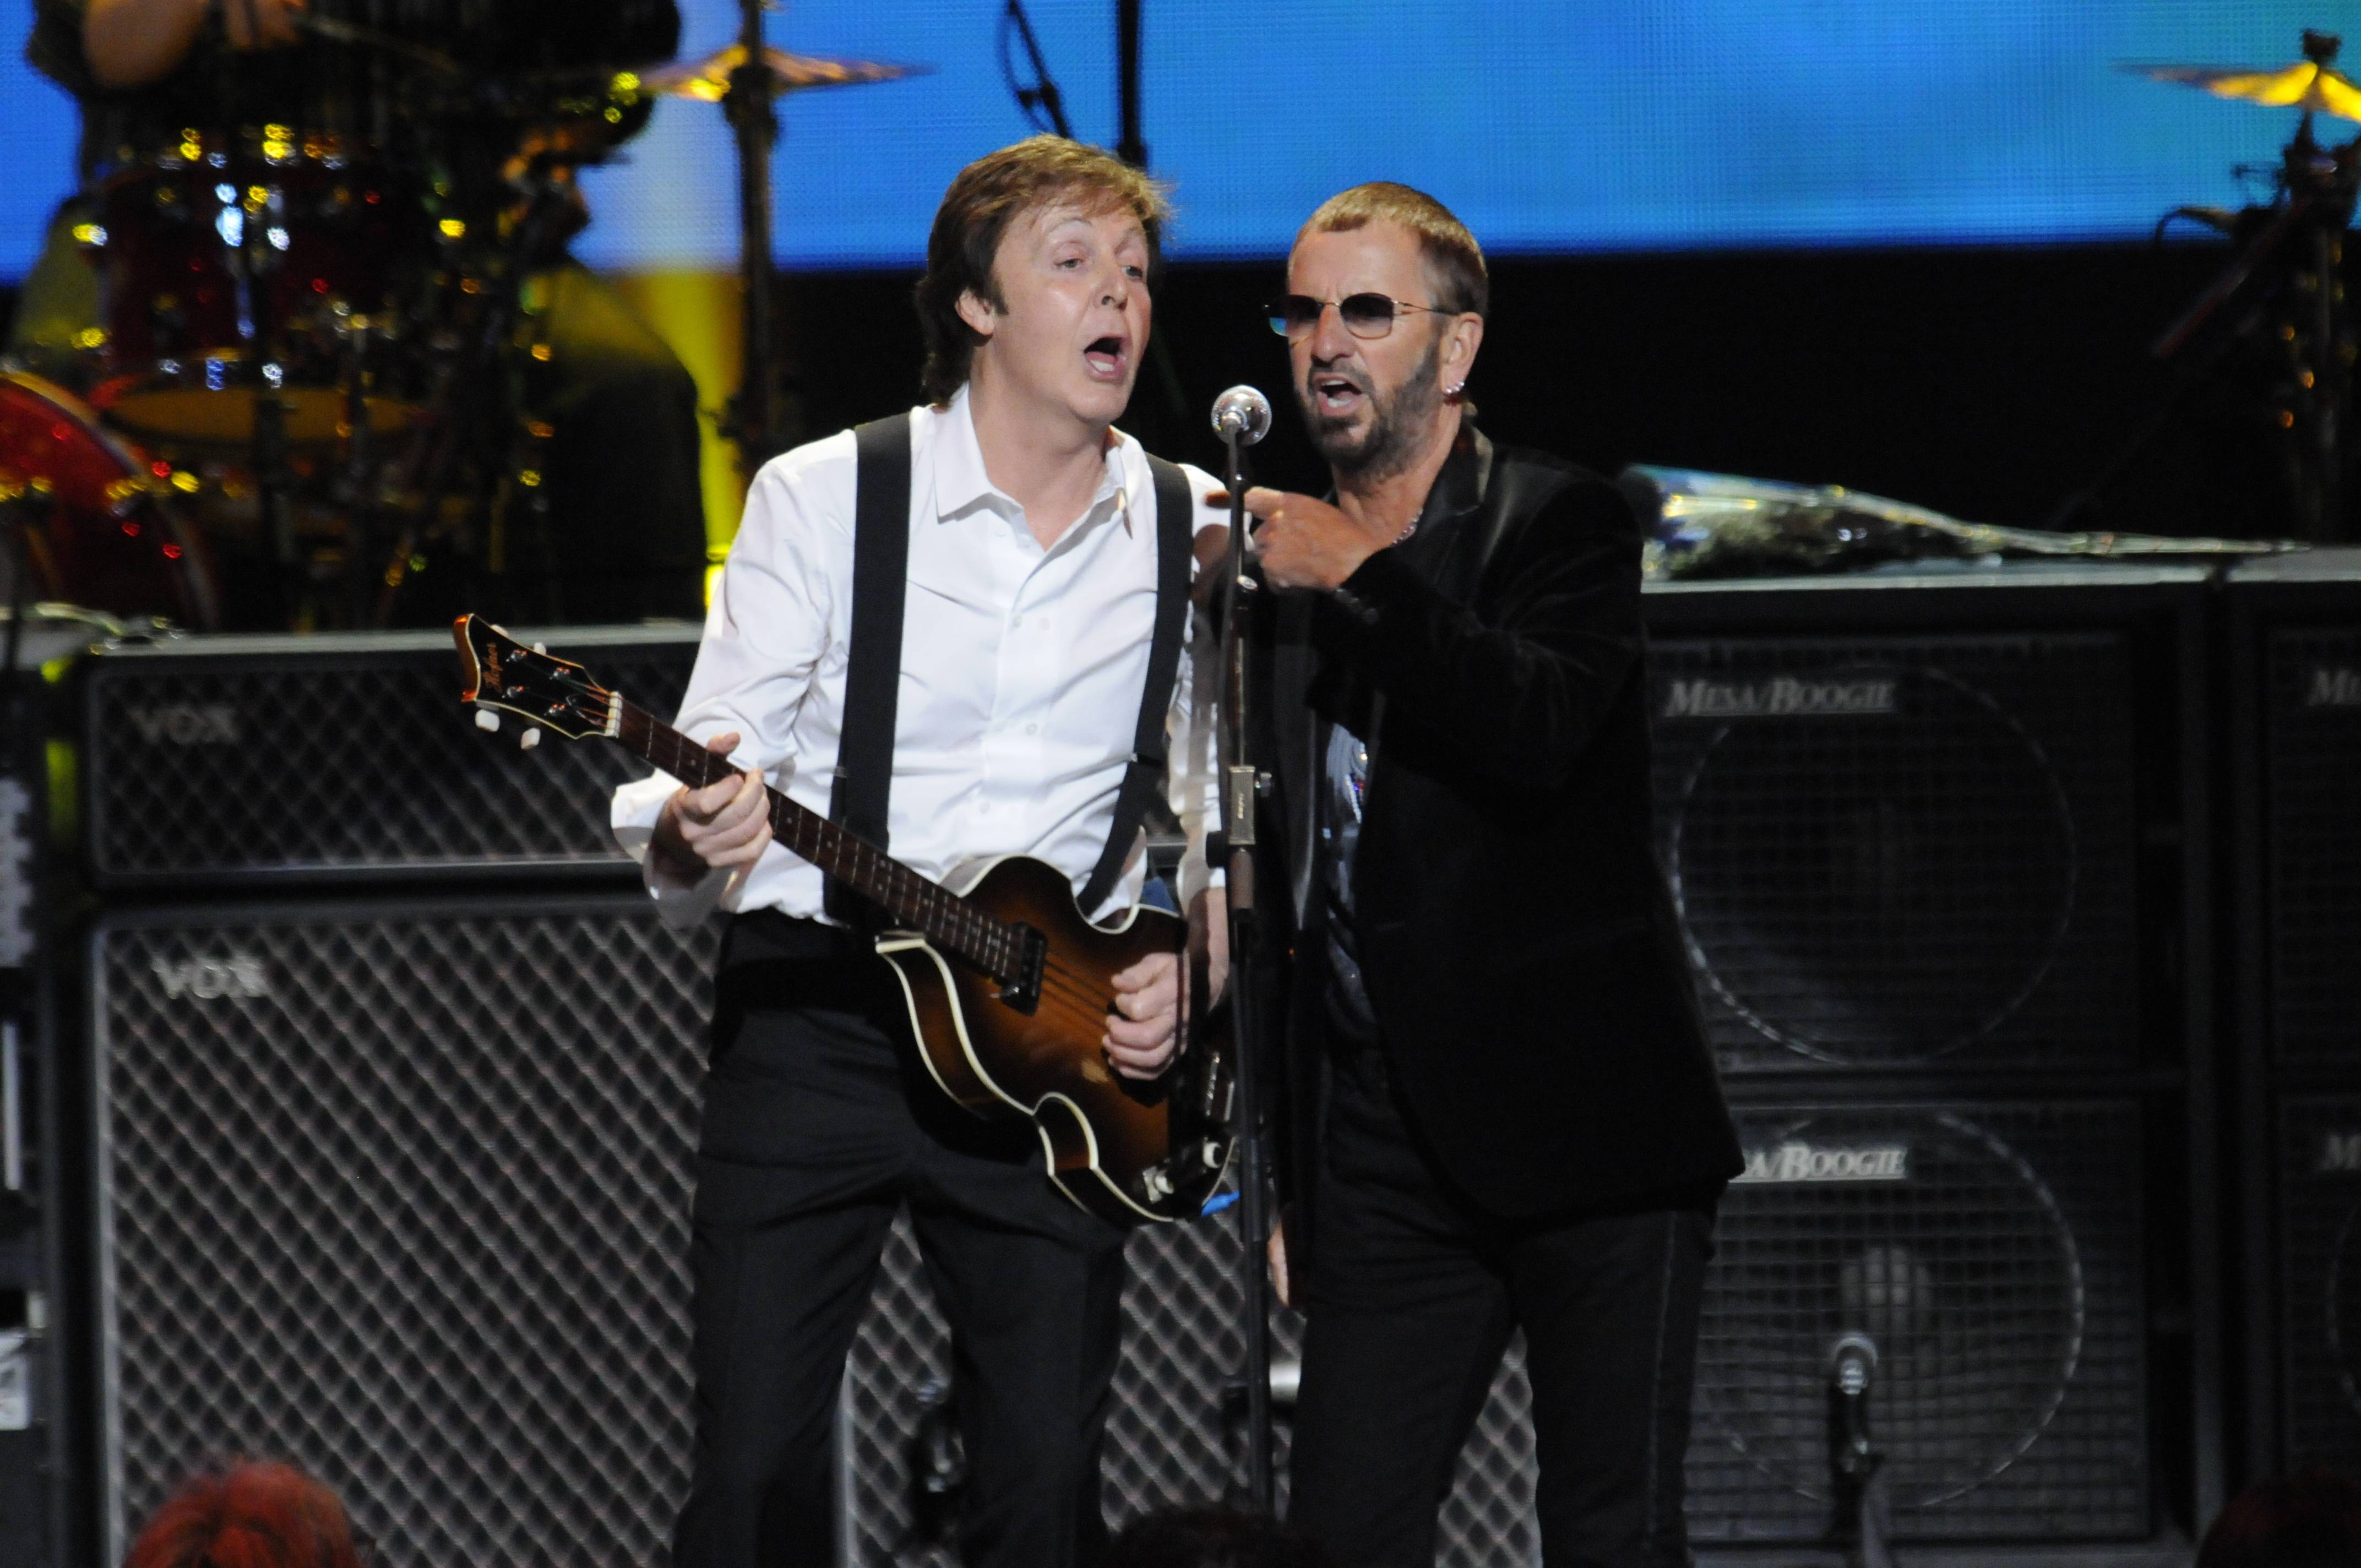 Photo of Ringo Starr & his friend musician   Paul McCartney - Beatles